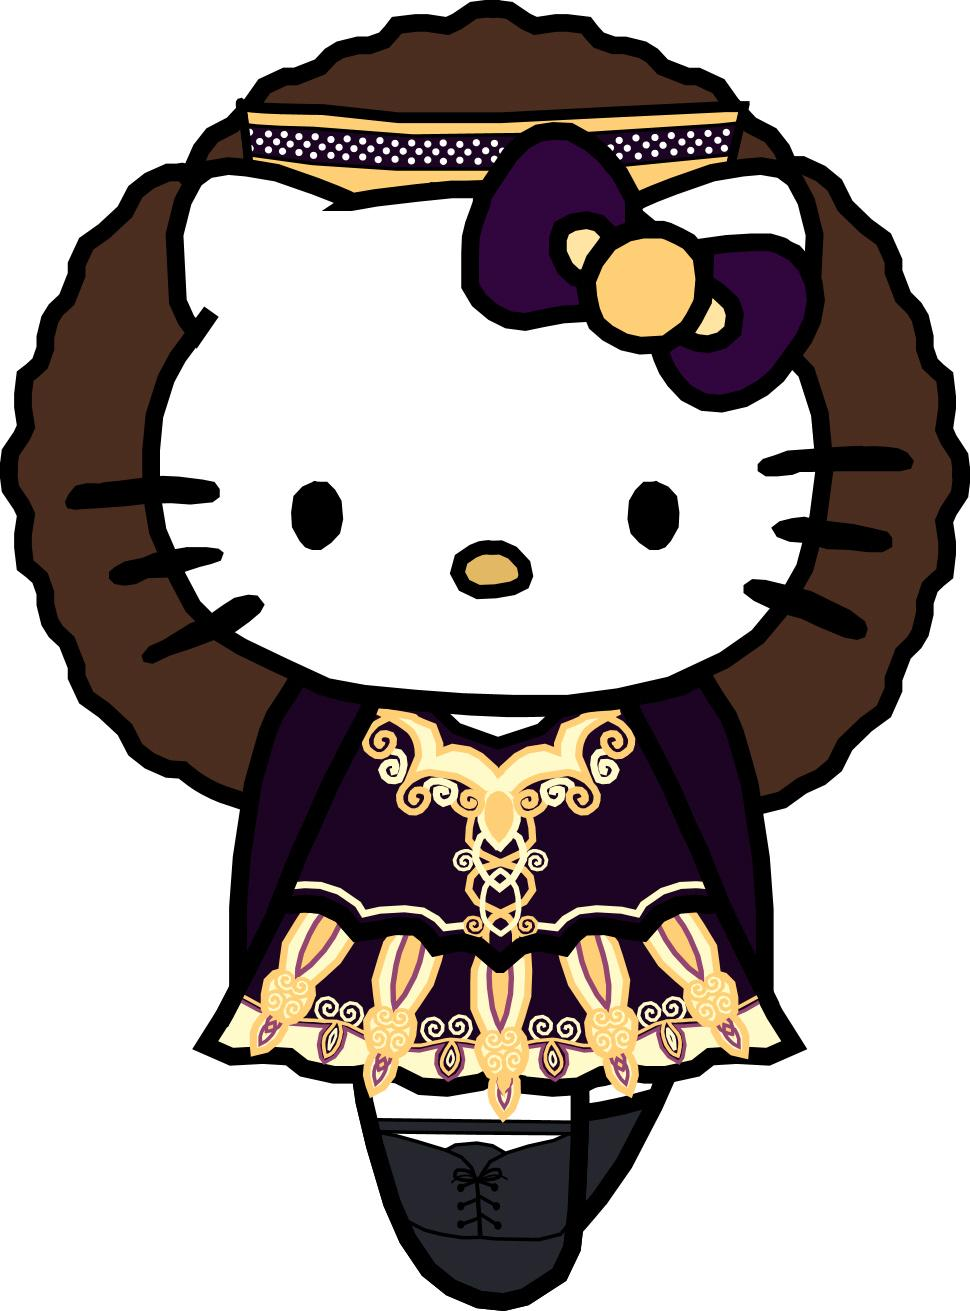 Uncategorized Dancing Hello Kitty dance net irish hello kitty 9351975 read article rosalinde i hope you dont mind but kittyfied cos still have nothing to do also your dress is super detailed and